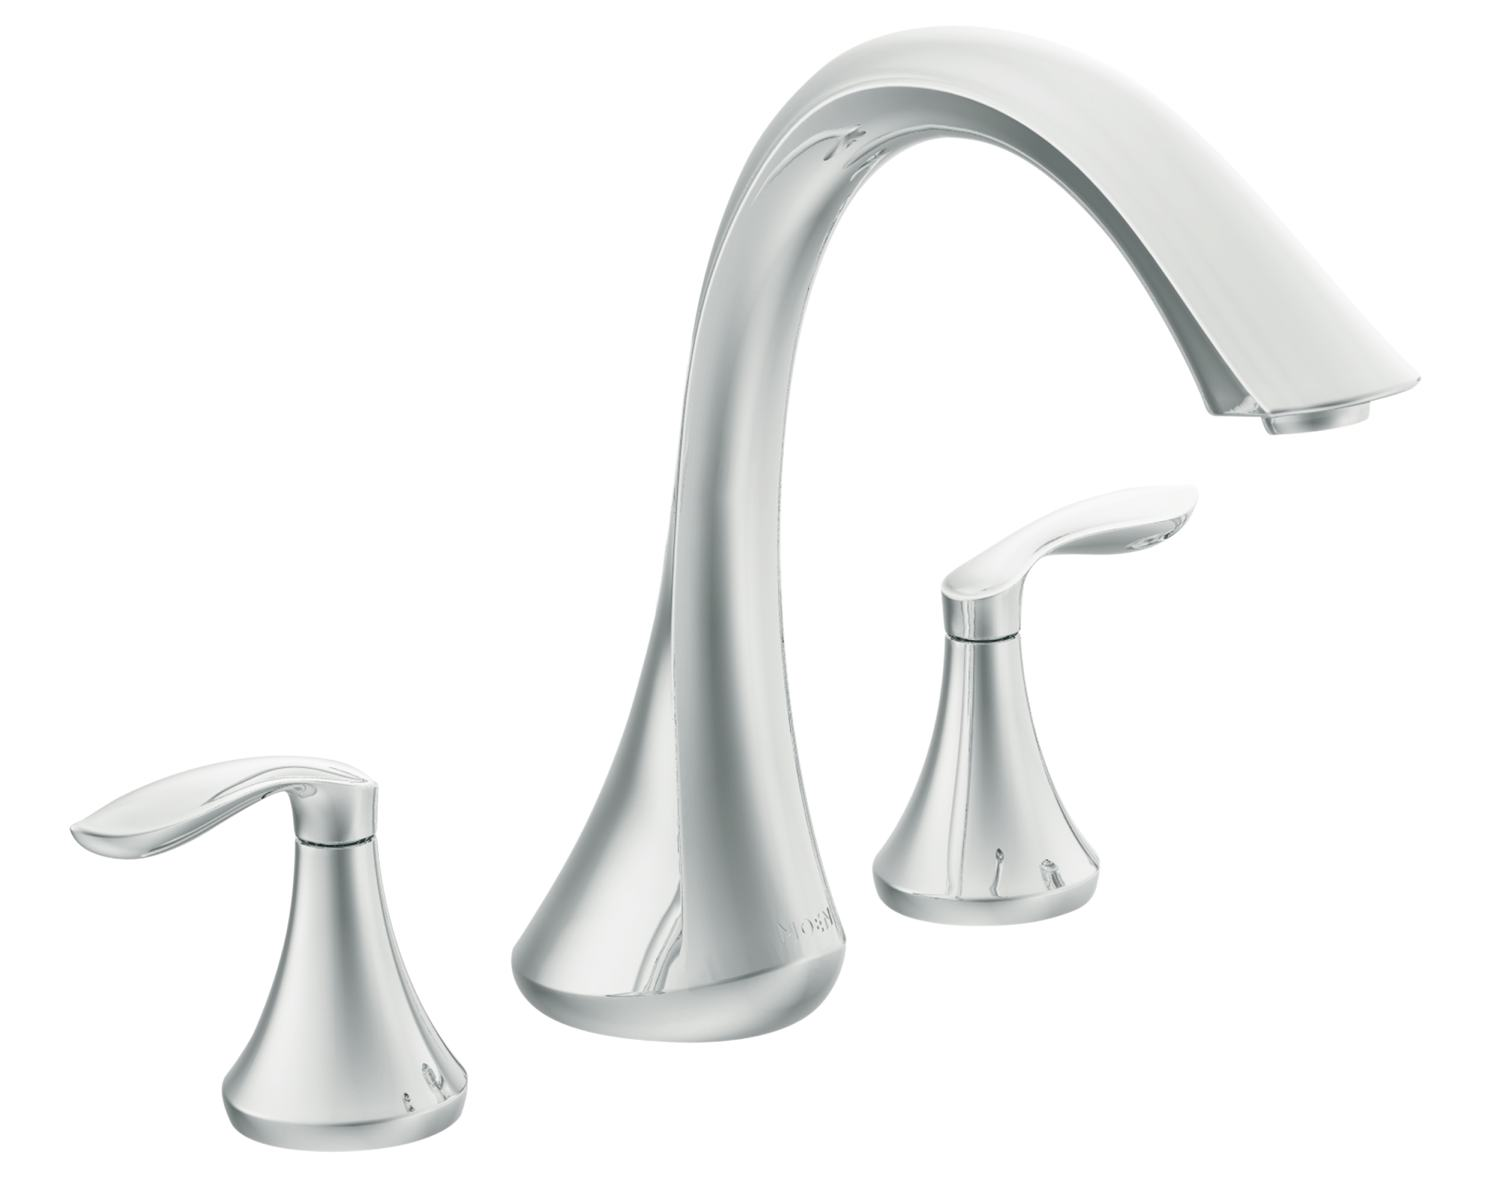 Moen T943 Eva Two-Handle High Arc Roman Tub Faucet without Valve ...